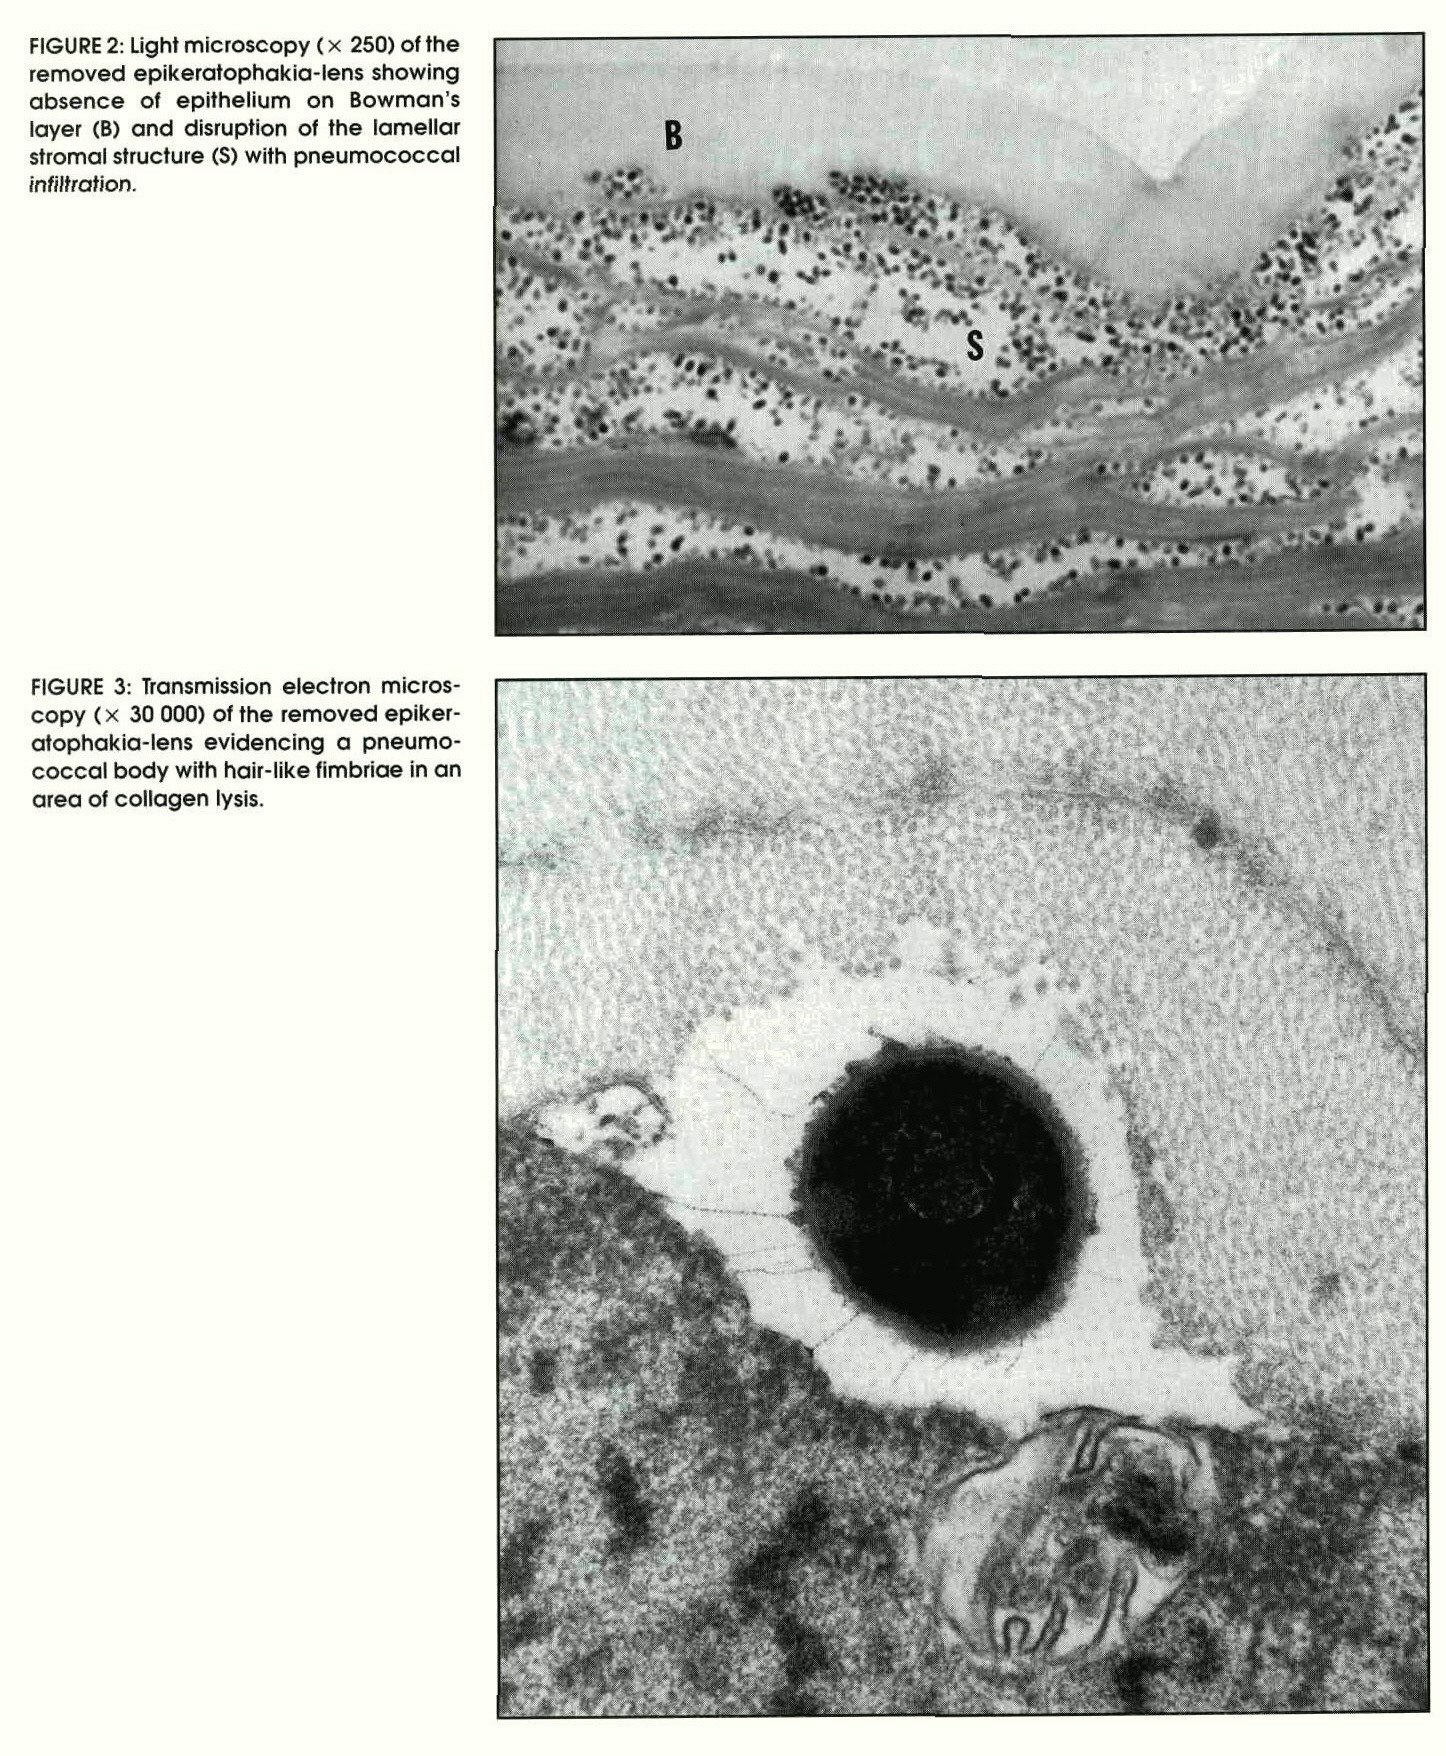 FIGURE 2: Light microscopy ( x 250) of the removed epikeratophakia-lens showing absence of epithelium on Bowman's layer (B) and disruption of the lamellar stromal structure (S) with pneumococcal infiltration.FIGURE 3: Transmission electron microscopy (x 30 000) of the removed epikeratophakia-lens evidencing a pneumococcal body with hair-like fimbriae in an area of collagen lysis.